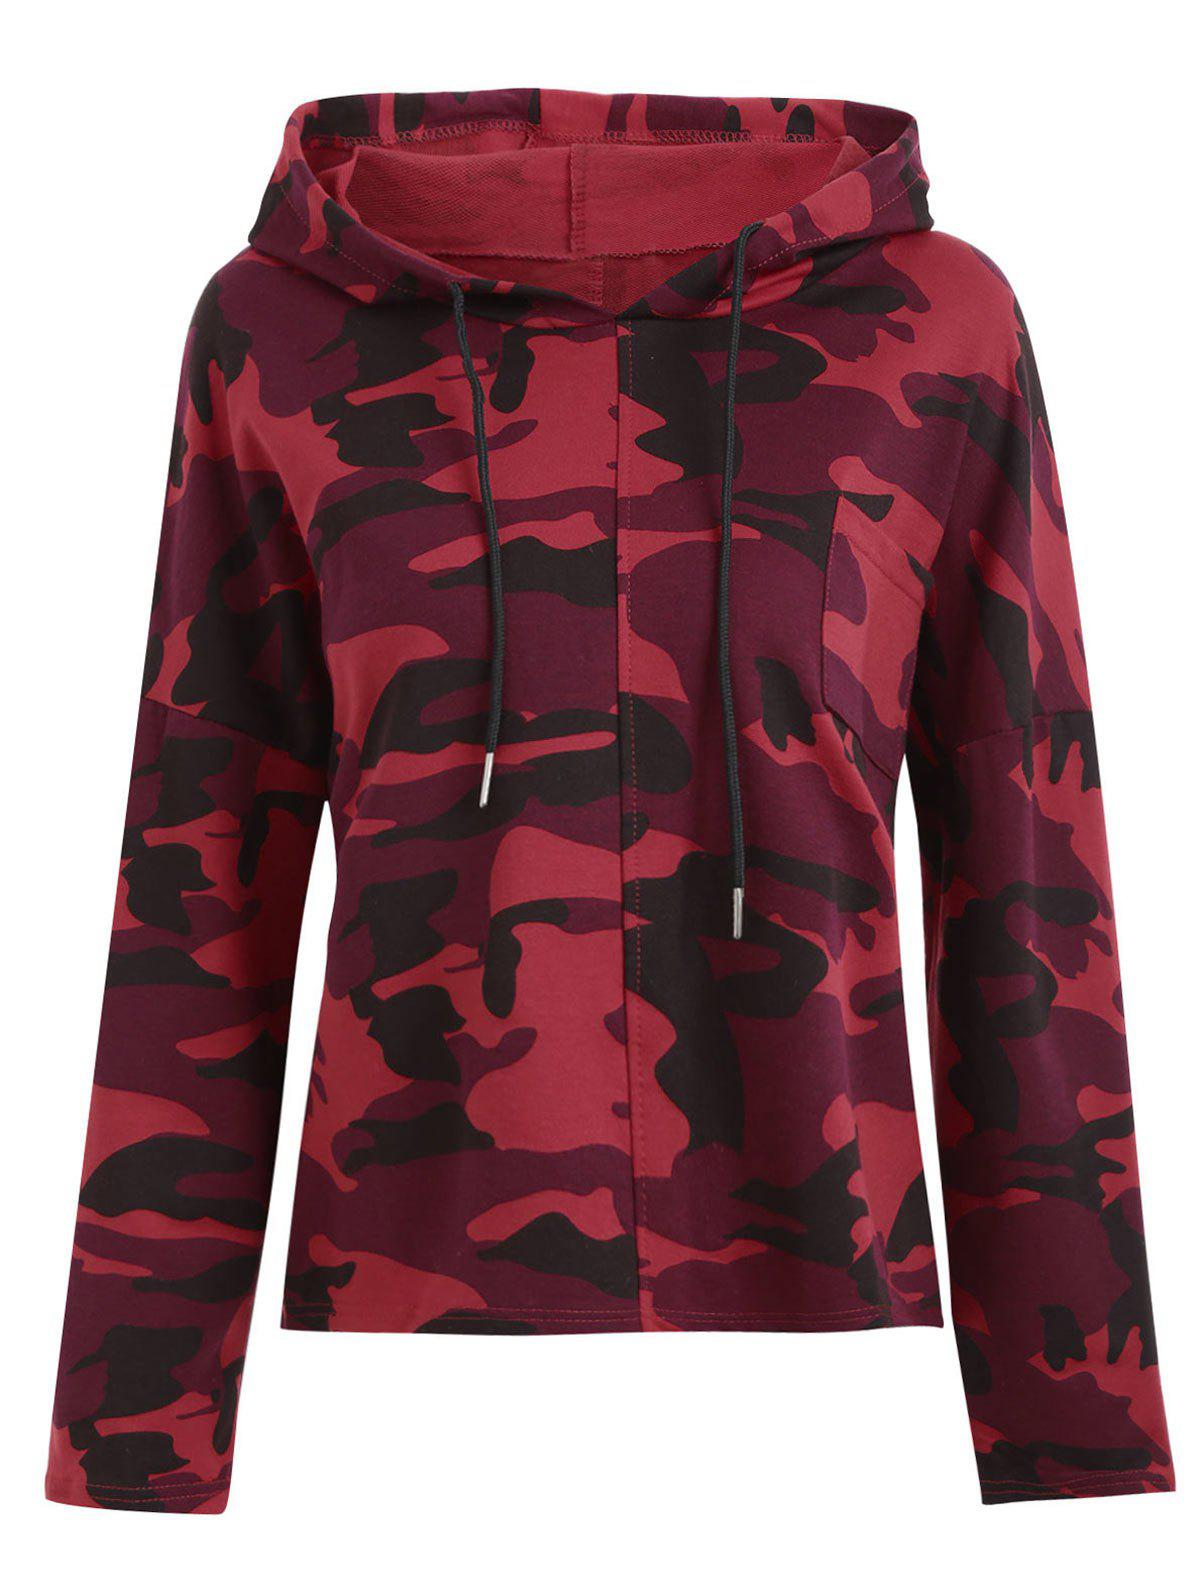 Plus Size Camo Printed Pullover HoodieWOMEN<br><br>Size: 4XL; Color: RED; Material: Cotton Blend,Polyester; Shirt Length: Regular; Sleeve Length: Full; Style: Fashion; Pattern Style: Print; Embellishment: Front Pocket; Season: Fall,Spring,Winter; Weight: 0.3900kg; Package Contents: 1 x Hoodie;